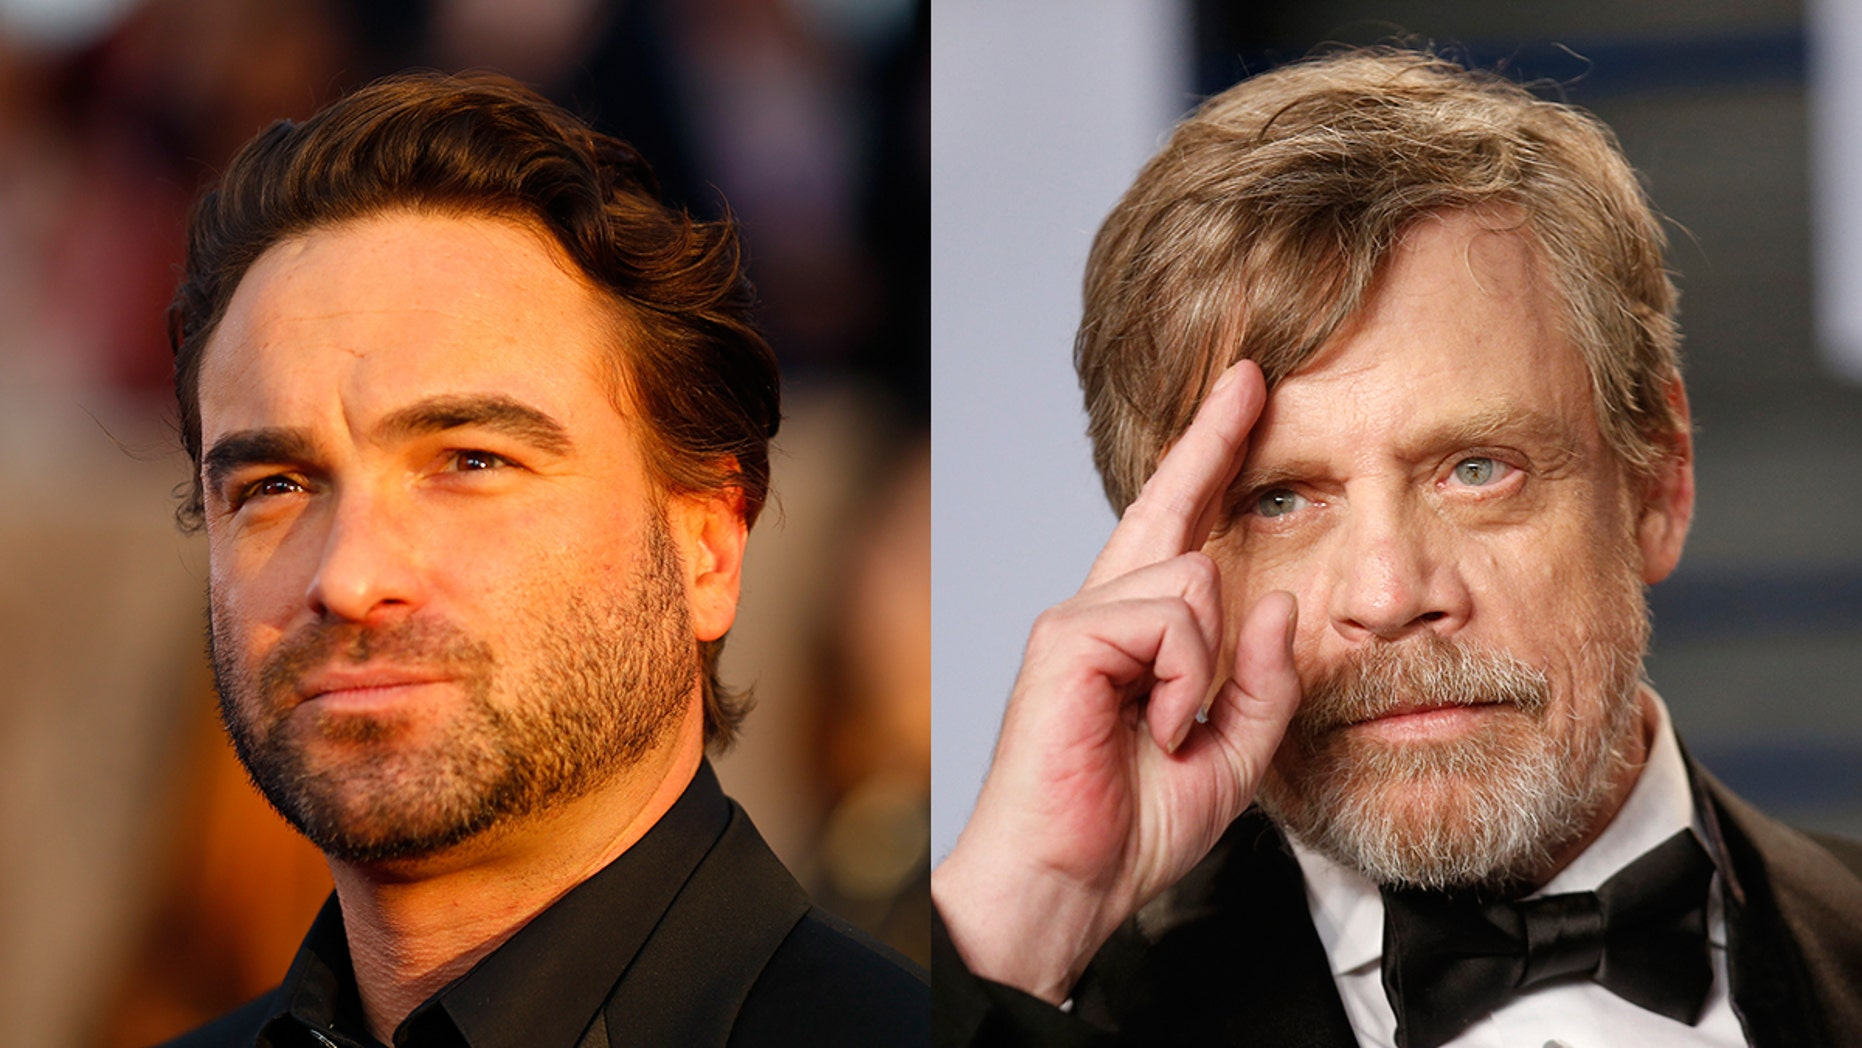 Johnny Galecki says mark Hamill asked a lot of questions about 'Roseanne' while guest starring on 'The Big Bang Theory.'